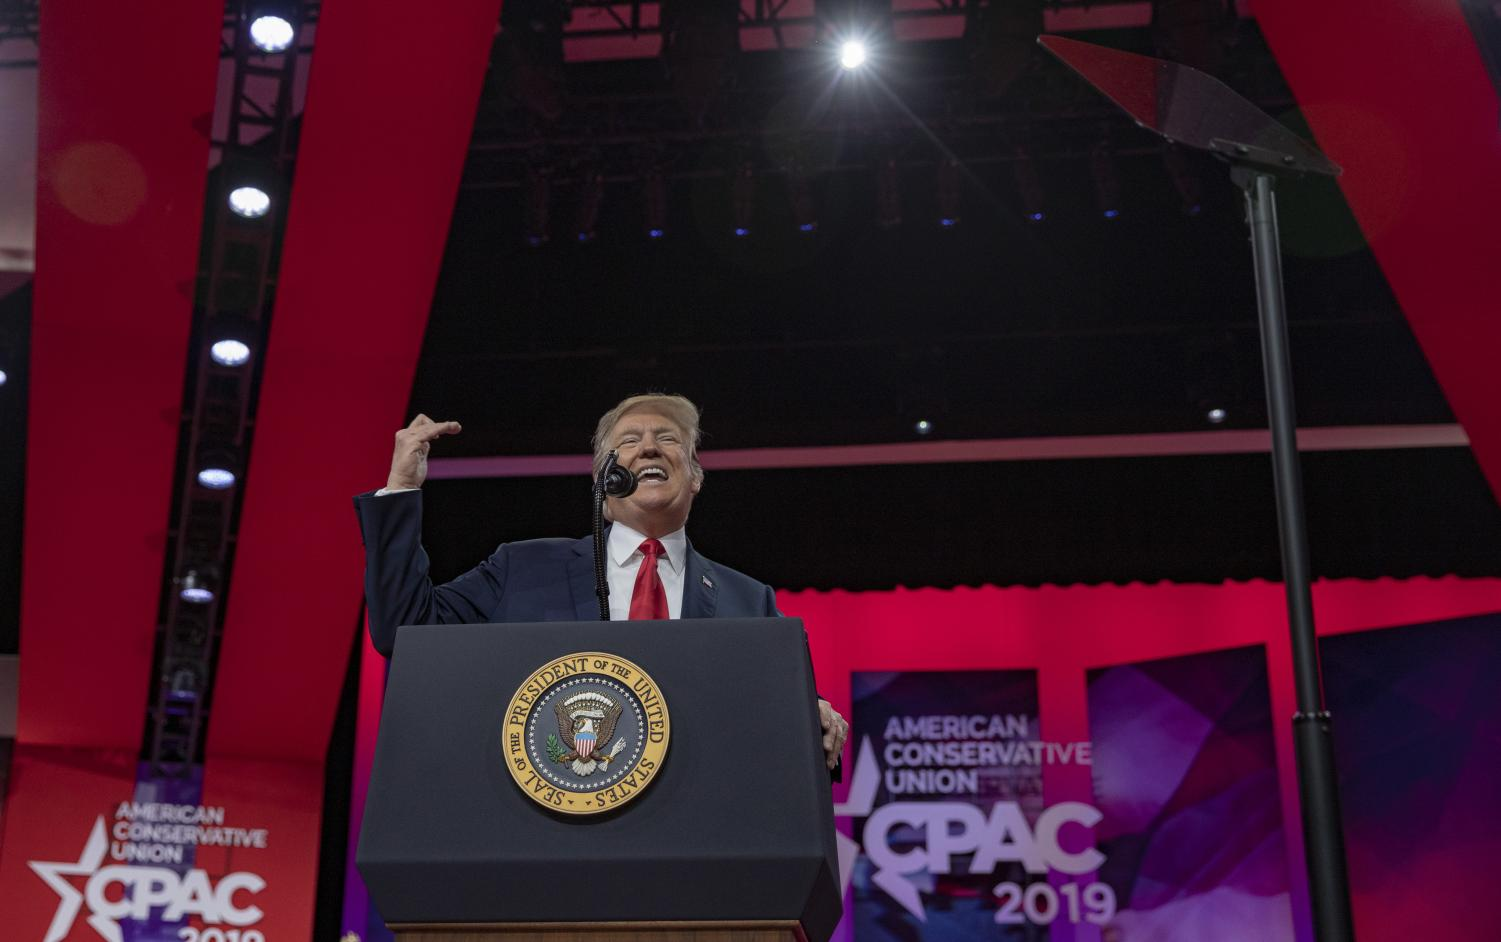 U.S. President Donald Trump speaks during CPAC 2019 on March 02, 2019 in National Harbor, Maryland. The American Conservative Union hosts the annual Conservative Political Action Conference to discuss conservative agenda. (Tasos Katopodis/Getty Images/TNS)